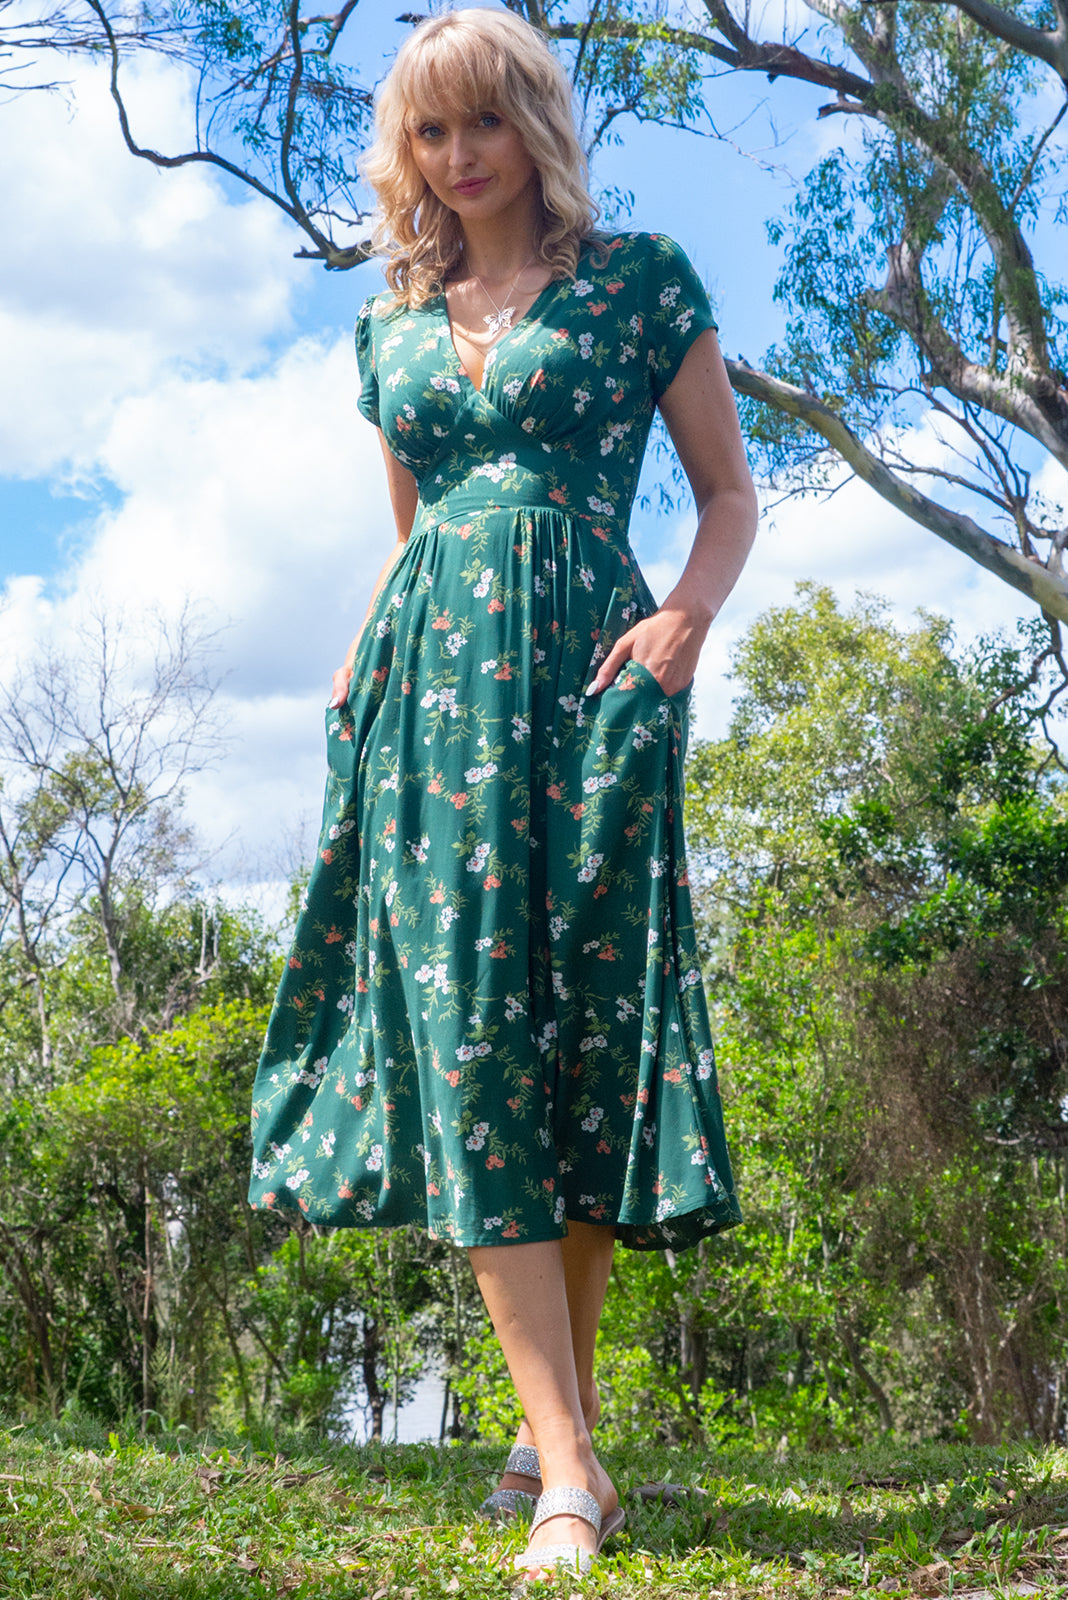 The Lizzie Green Gables Dress featuring fitted basque waist with gathered bust, waist features elastic shirring at back, petite side pockets and 100% rayon in muted green base with vintage inspired floral print.